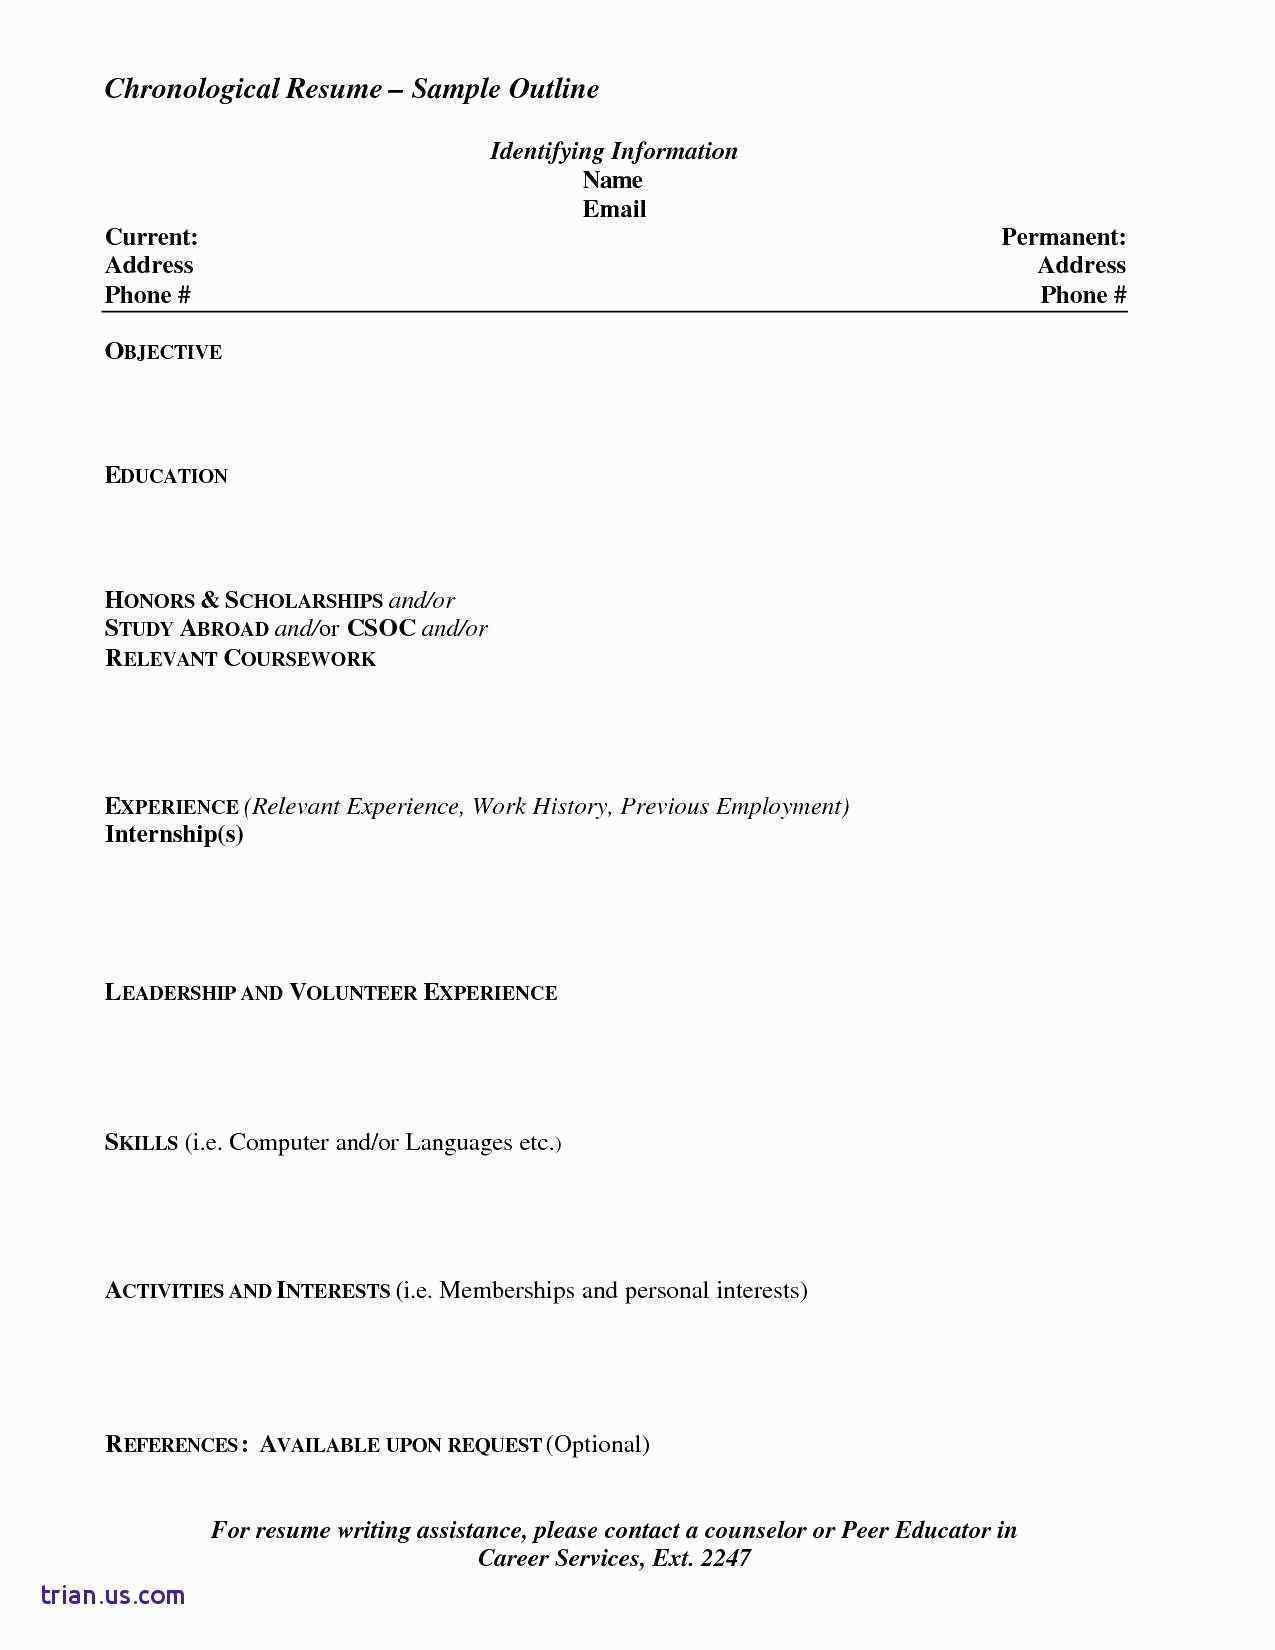 Electrical Engineering Entry Level Resume - Entry Level Electrical Engineering Cover Letter Unique 38 Beautiful